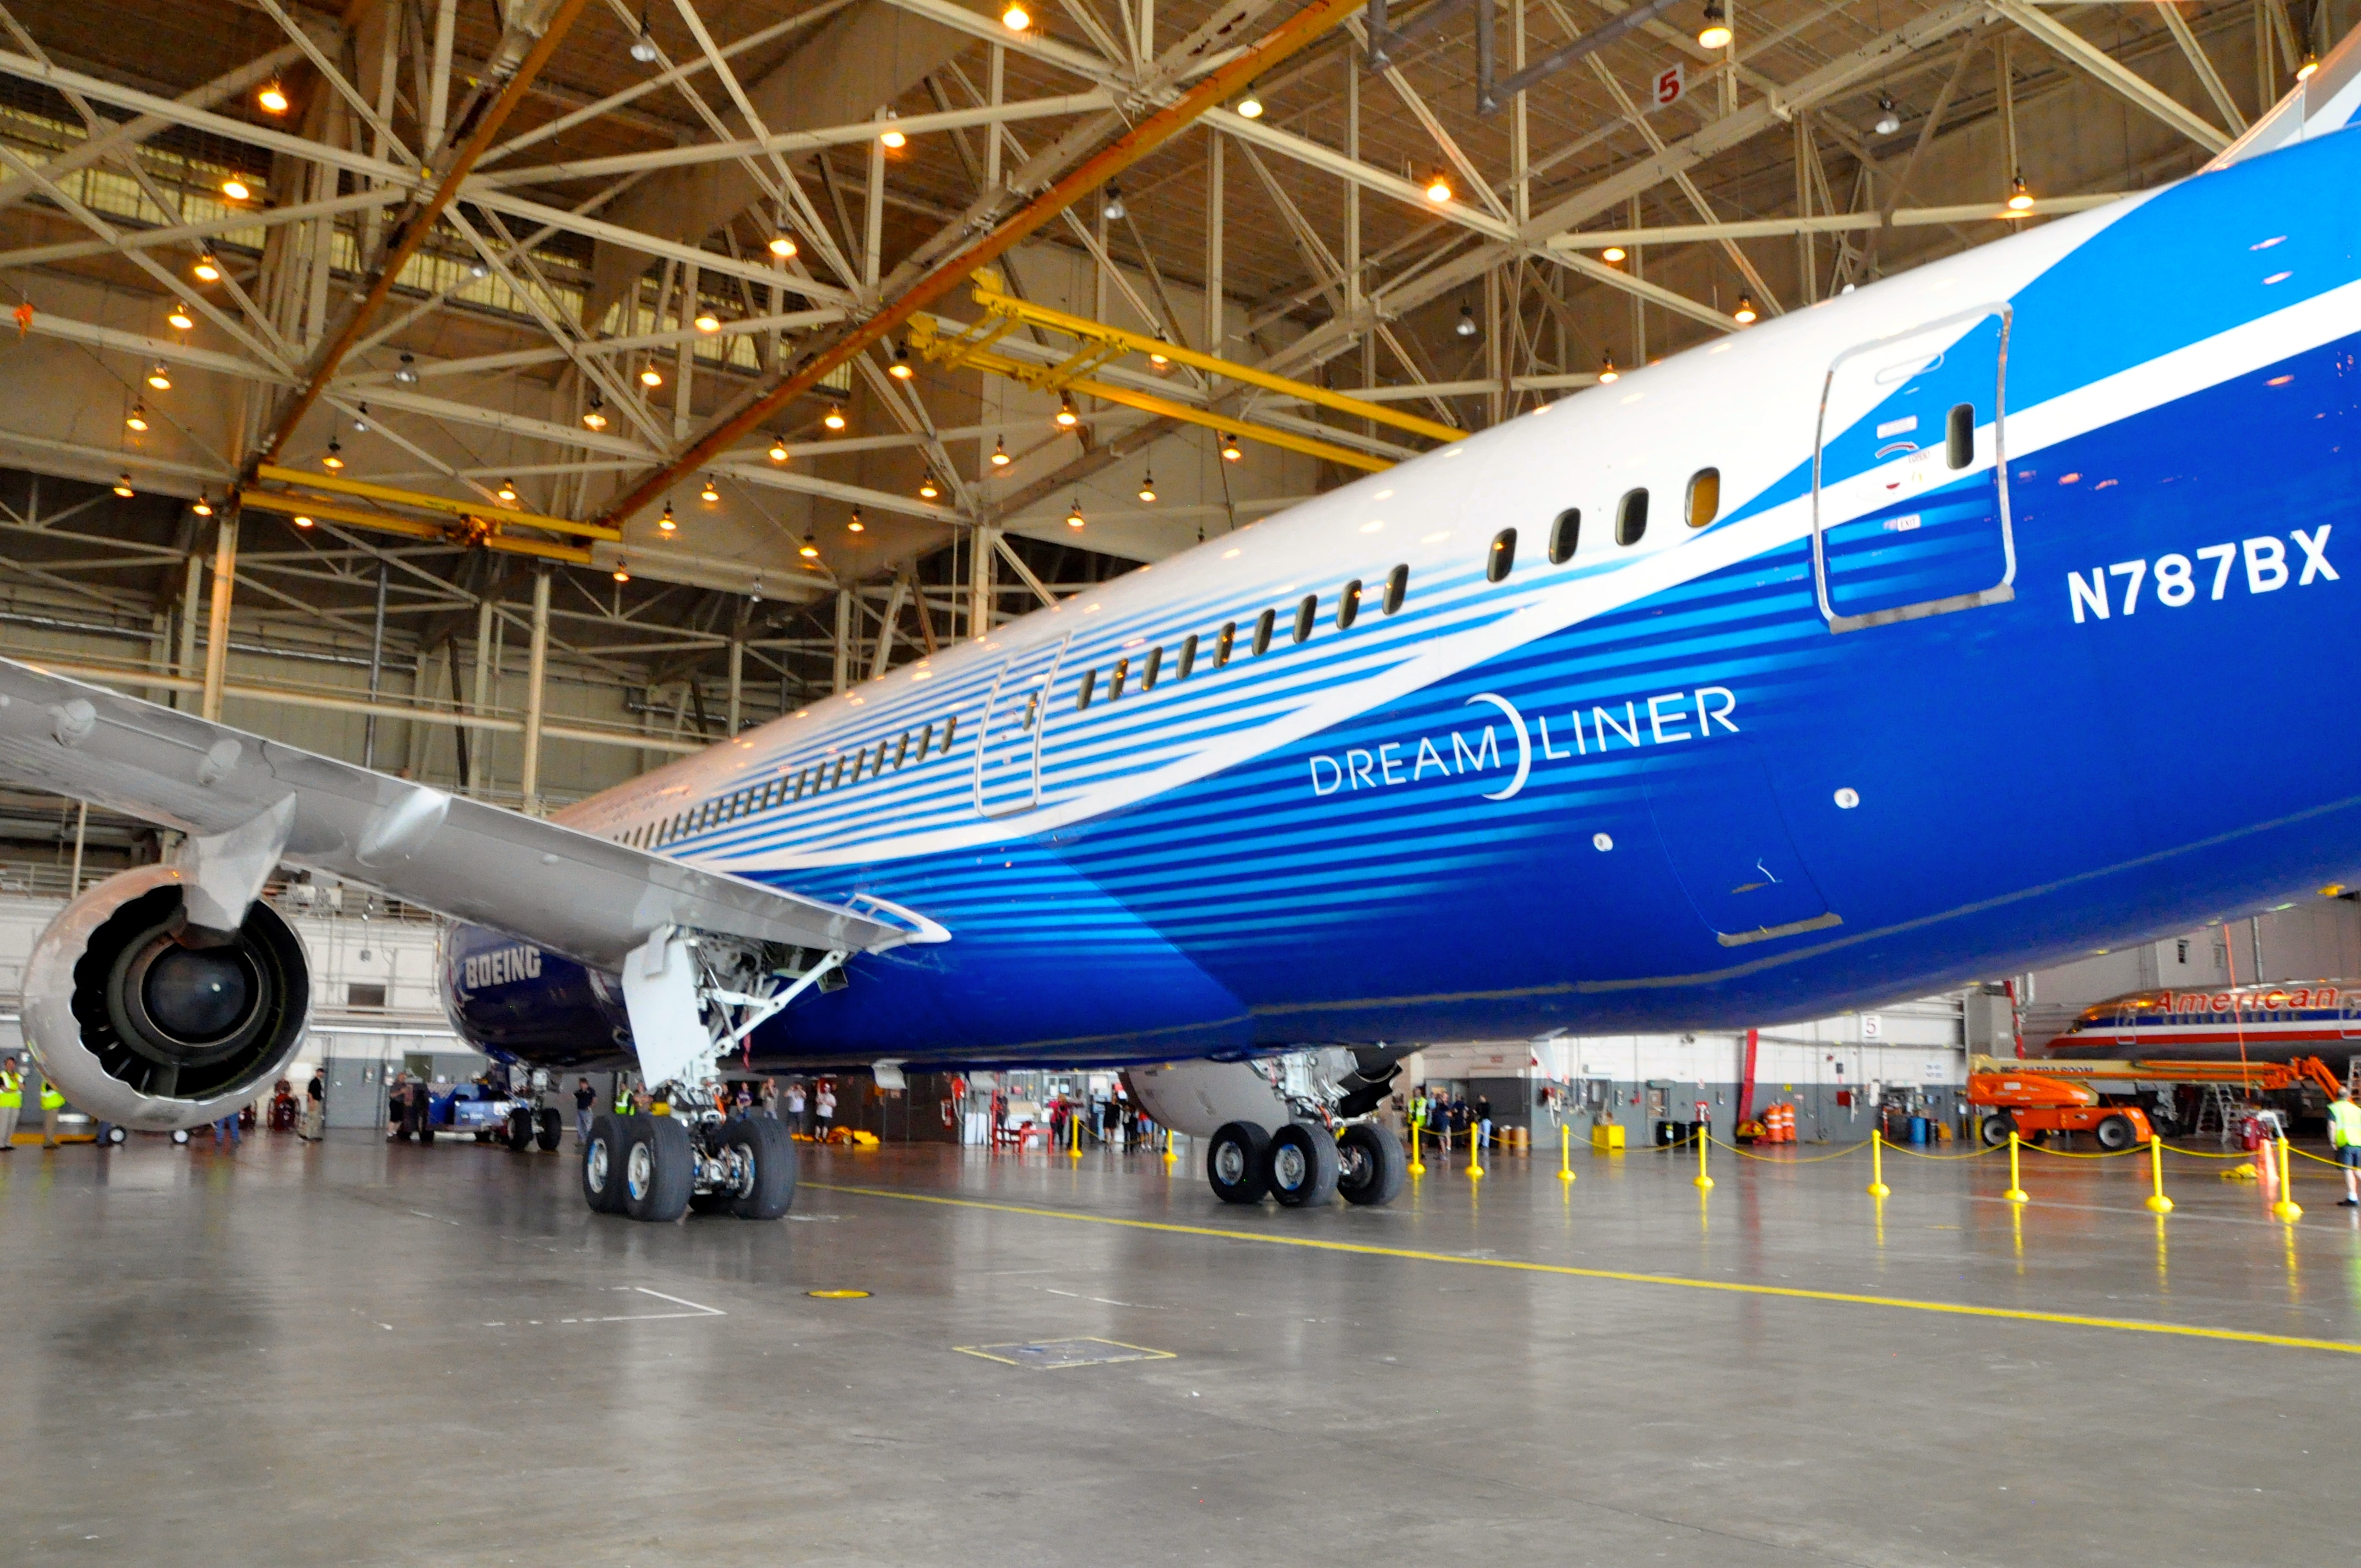 New high-tech aircraft such as the Boeing Dreamliner and Airbus A350 are in high demand